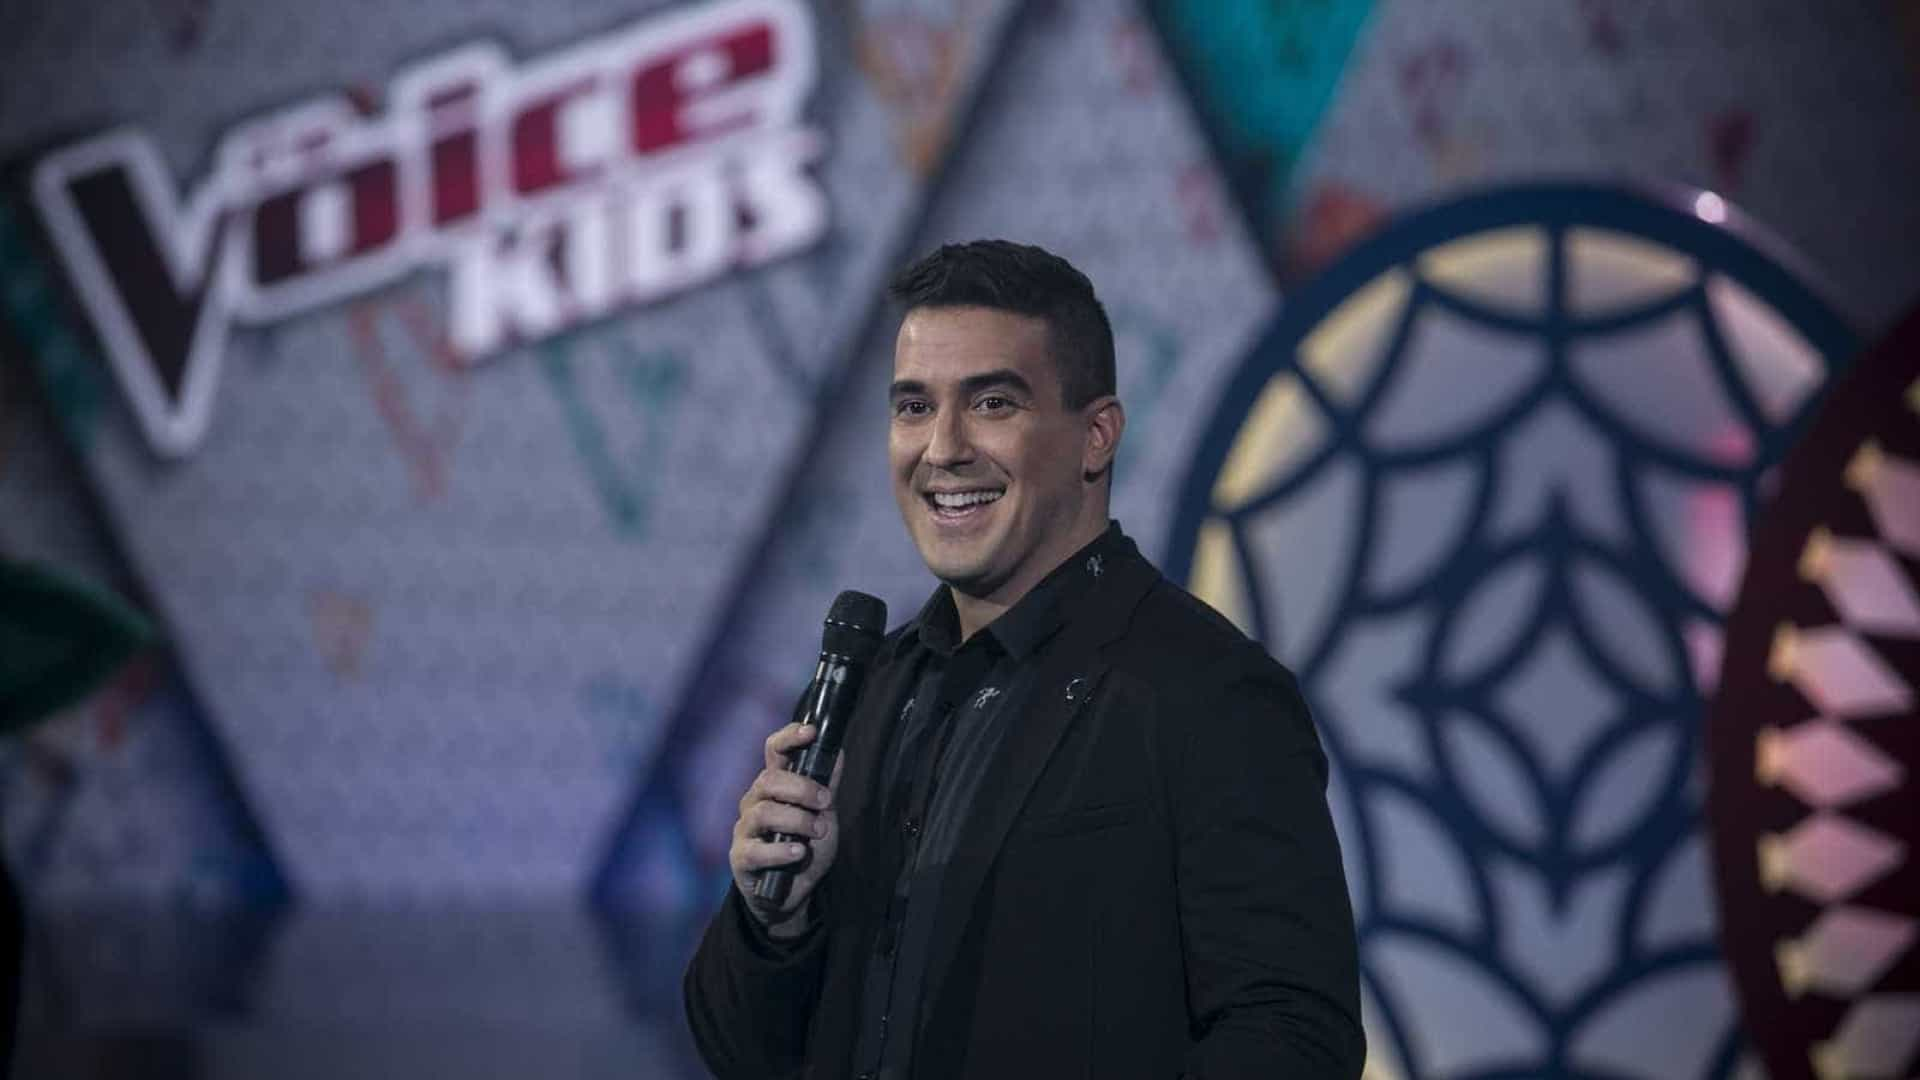 'The Voice Kids me despertou a vontade de ser pai', diz André Marques